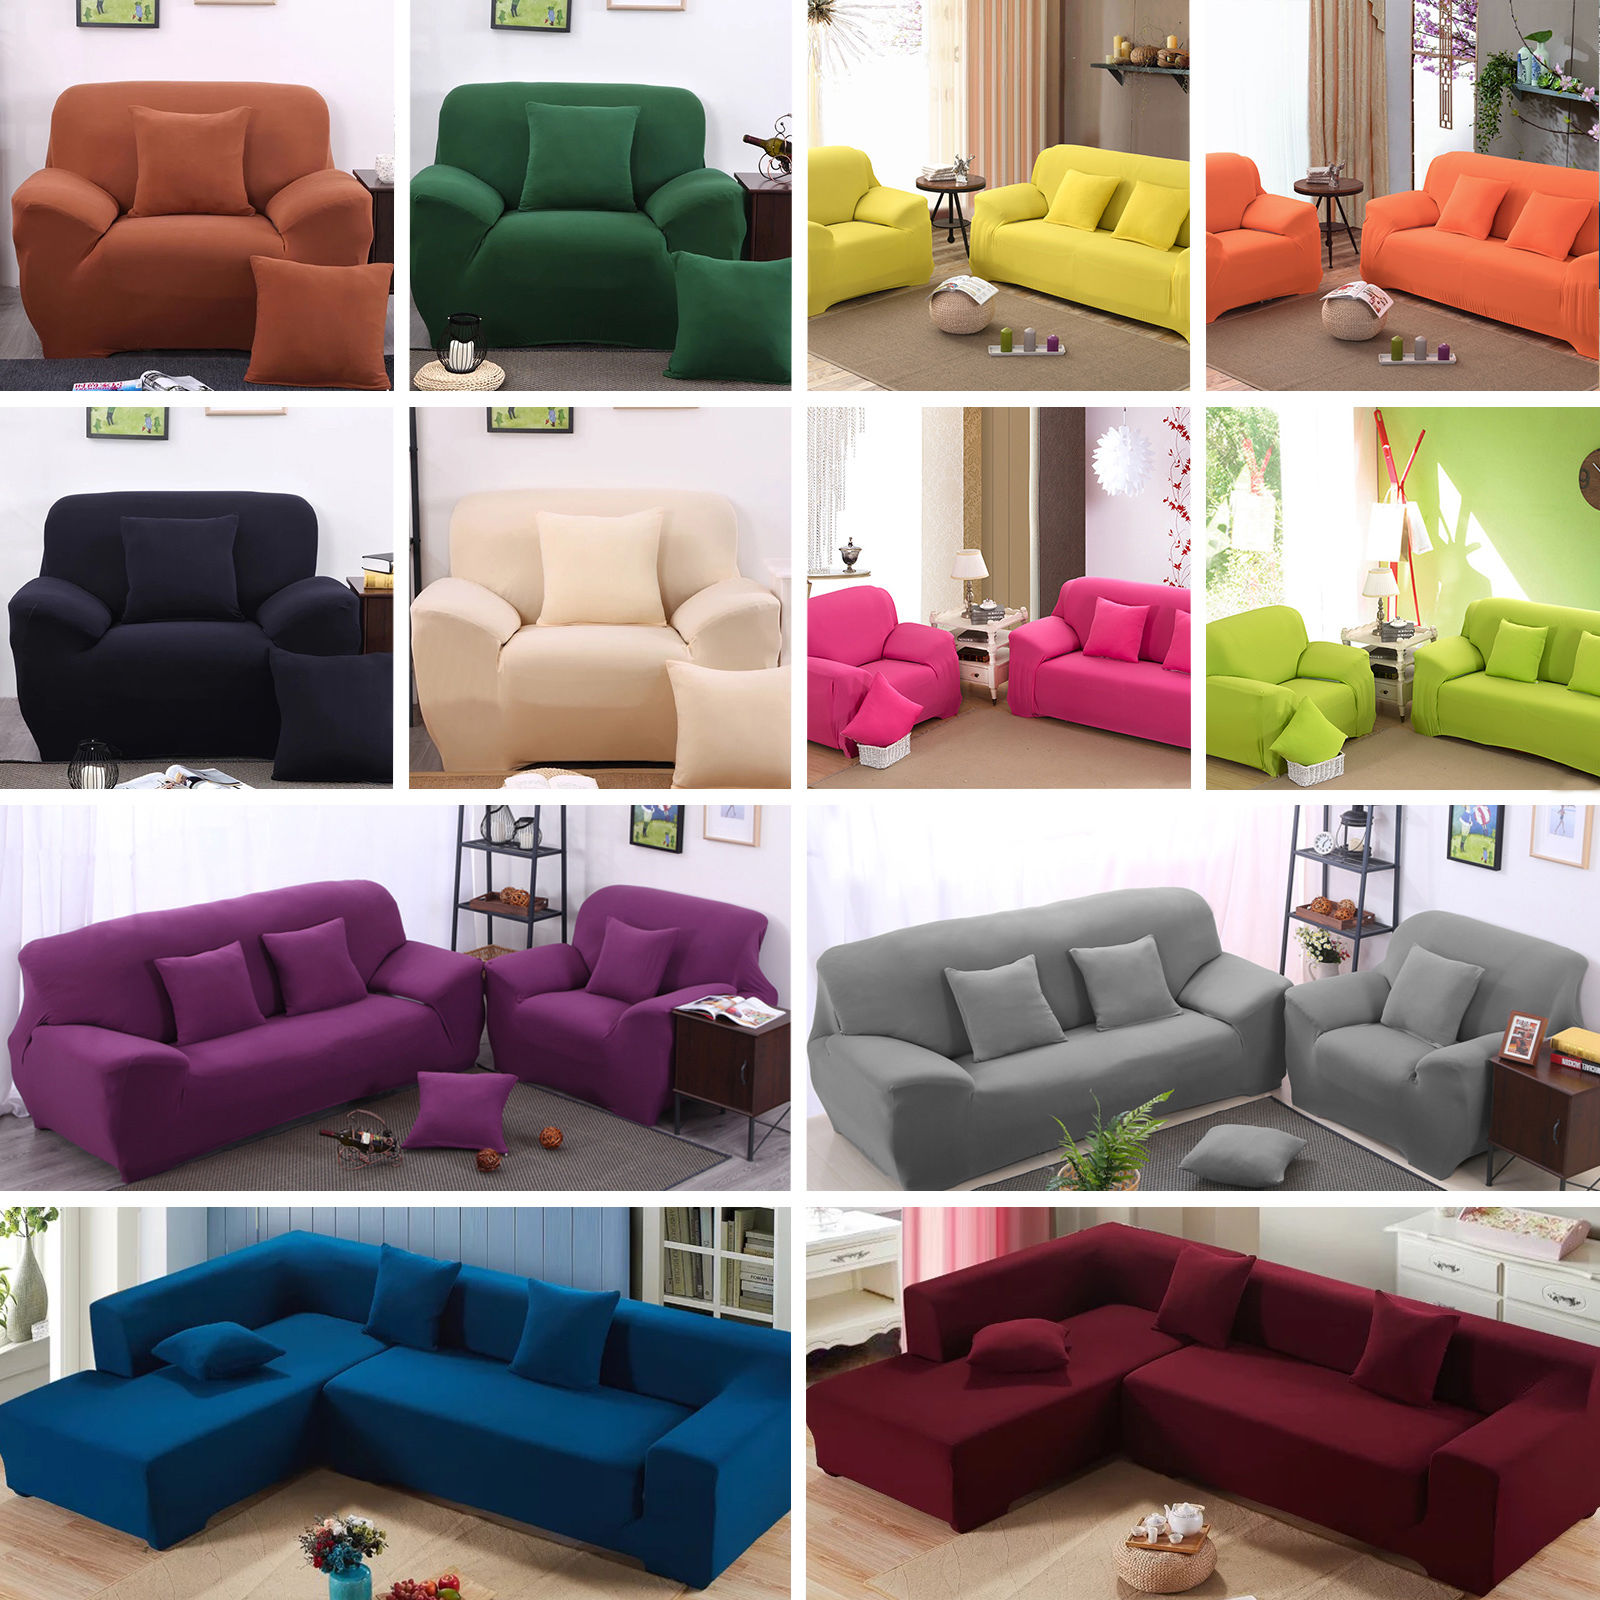 Details About Easy Stretch Couch Sofa Lounge Covers Recliner 1 2 3 4 Seater Dining Chair Cover